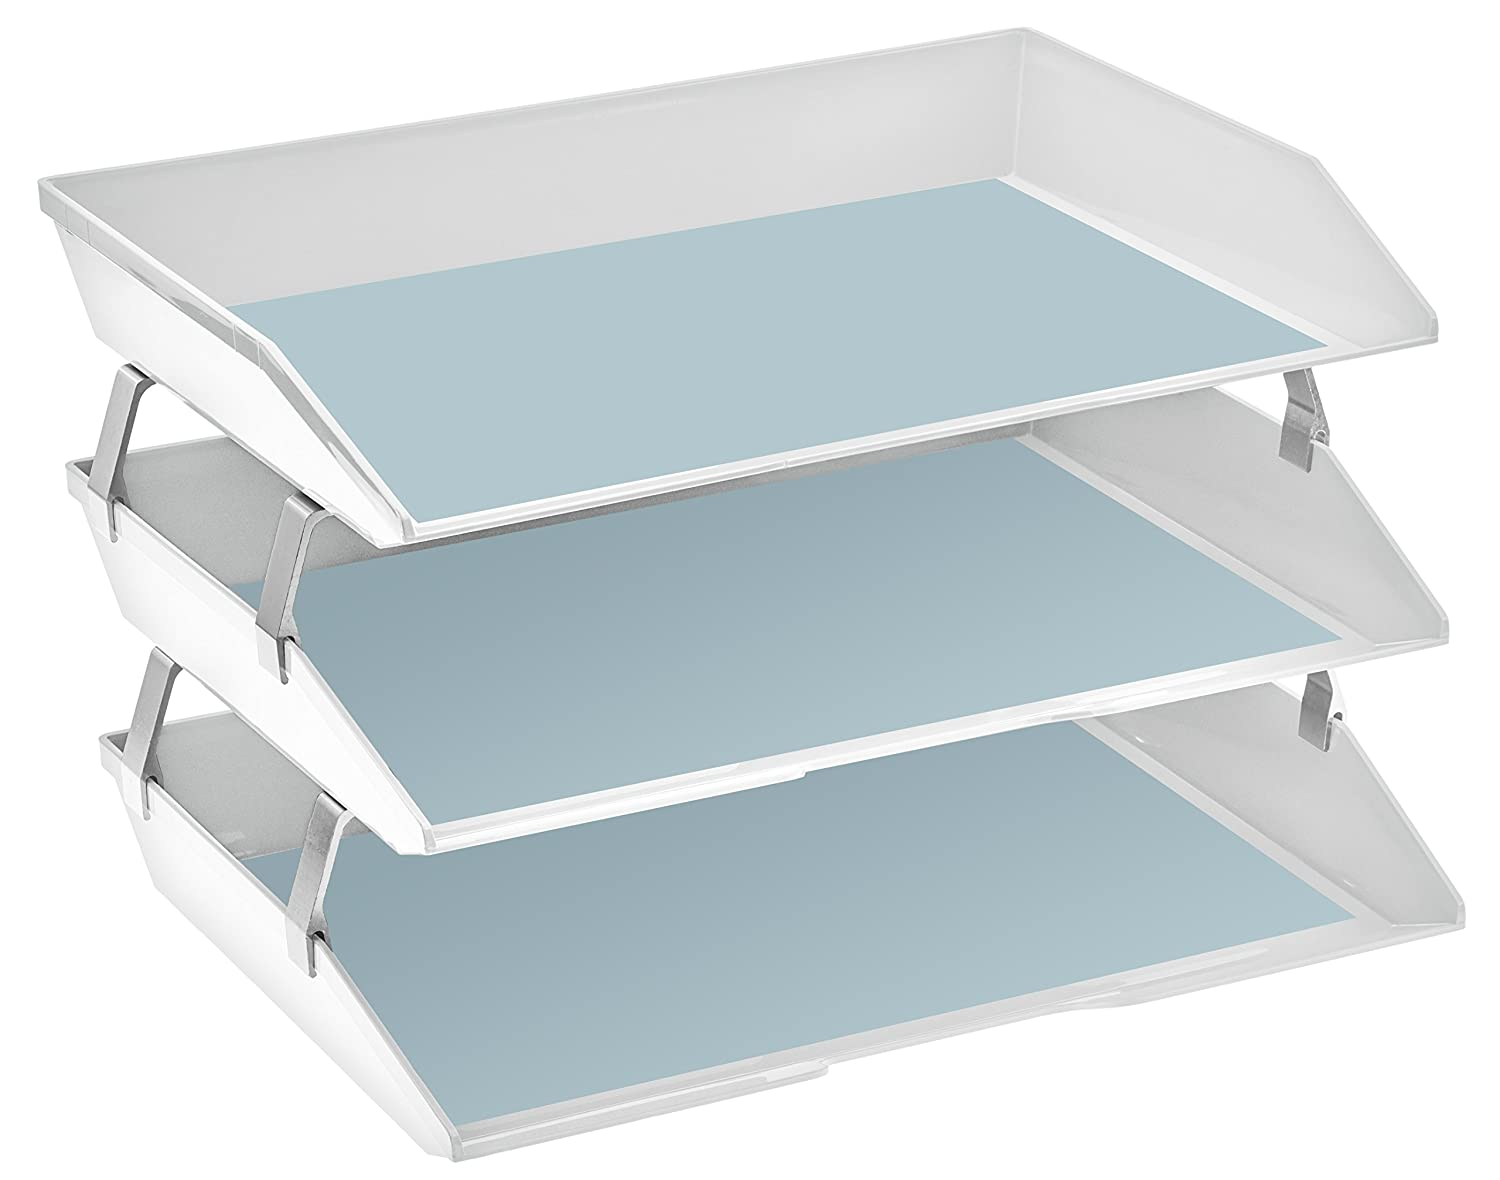 255.6 Acrimet Facility 3 Tiers Triple Letter Tray White Color